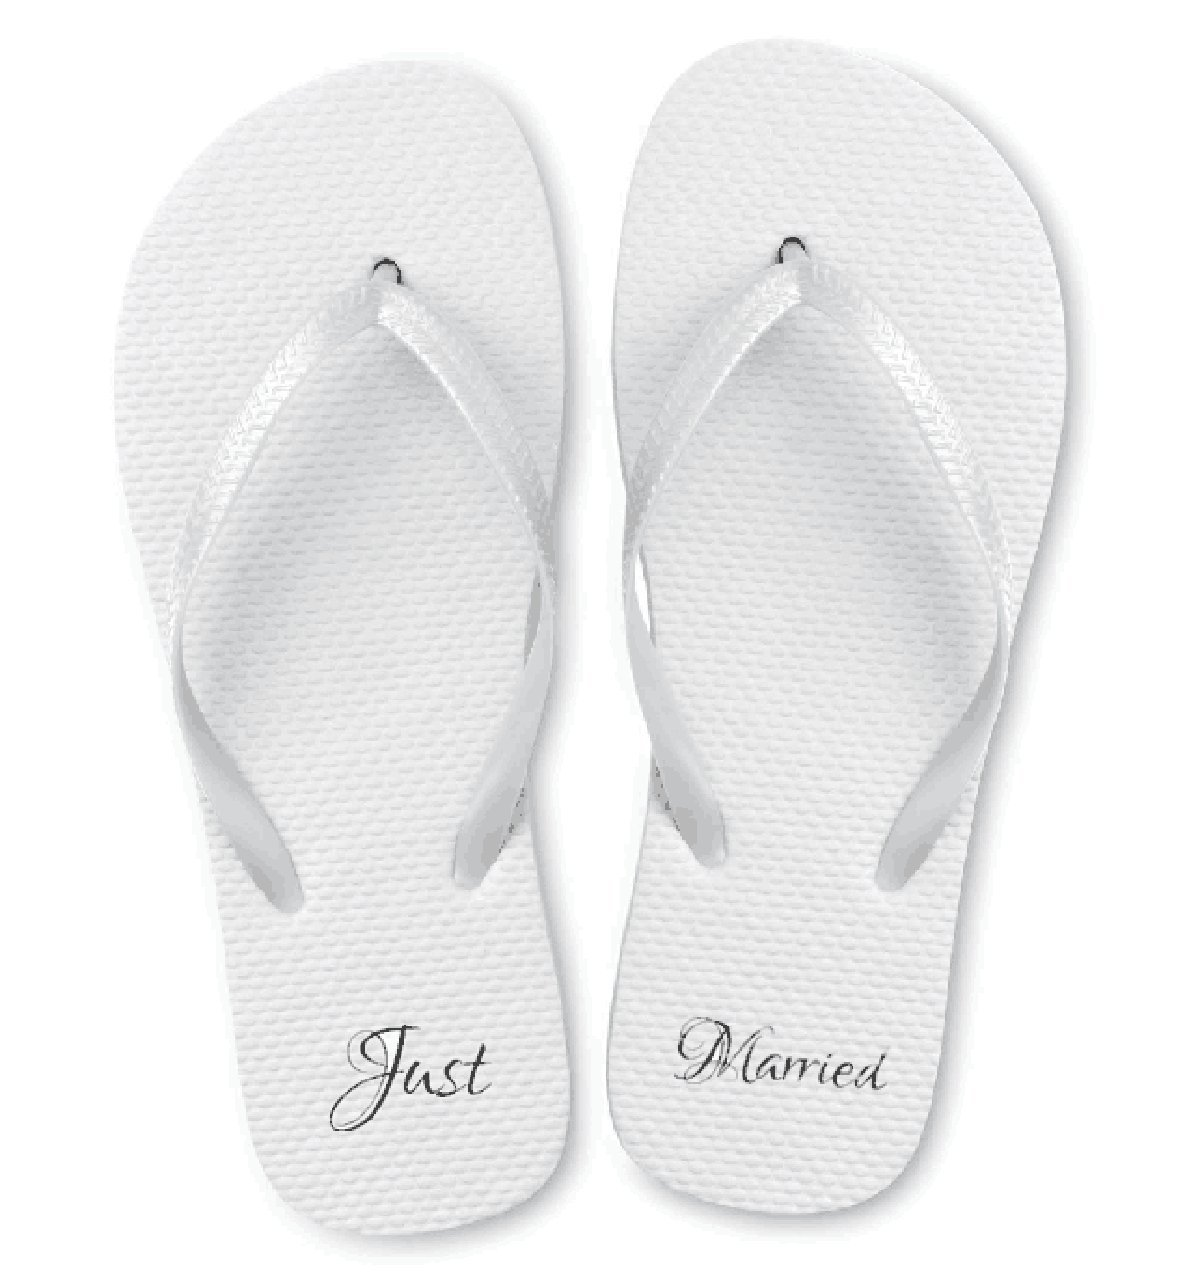 Just Married Wedding Flip Flop Sandals. Perfect for any Beach Wedding or Wedding Favor. Comes in Assorted Sizes of 20 or Individual Sizes. Assorted Case of 20